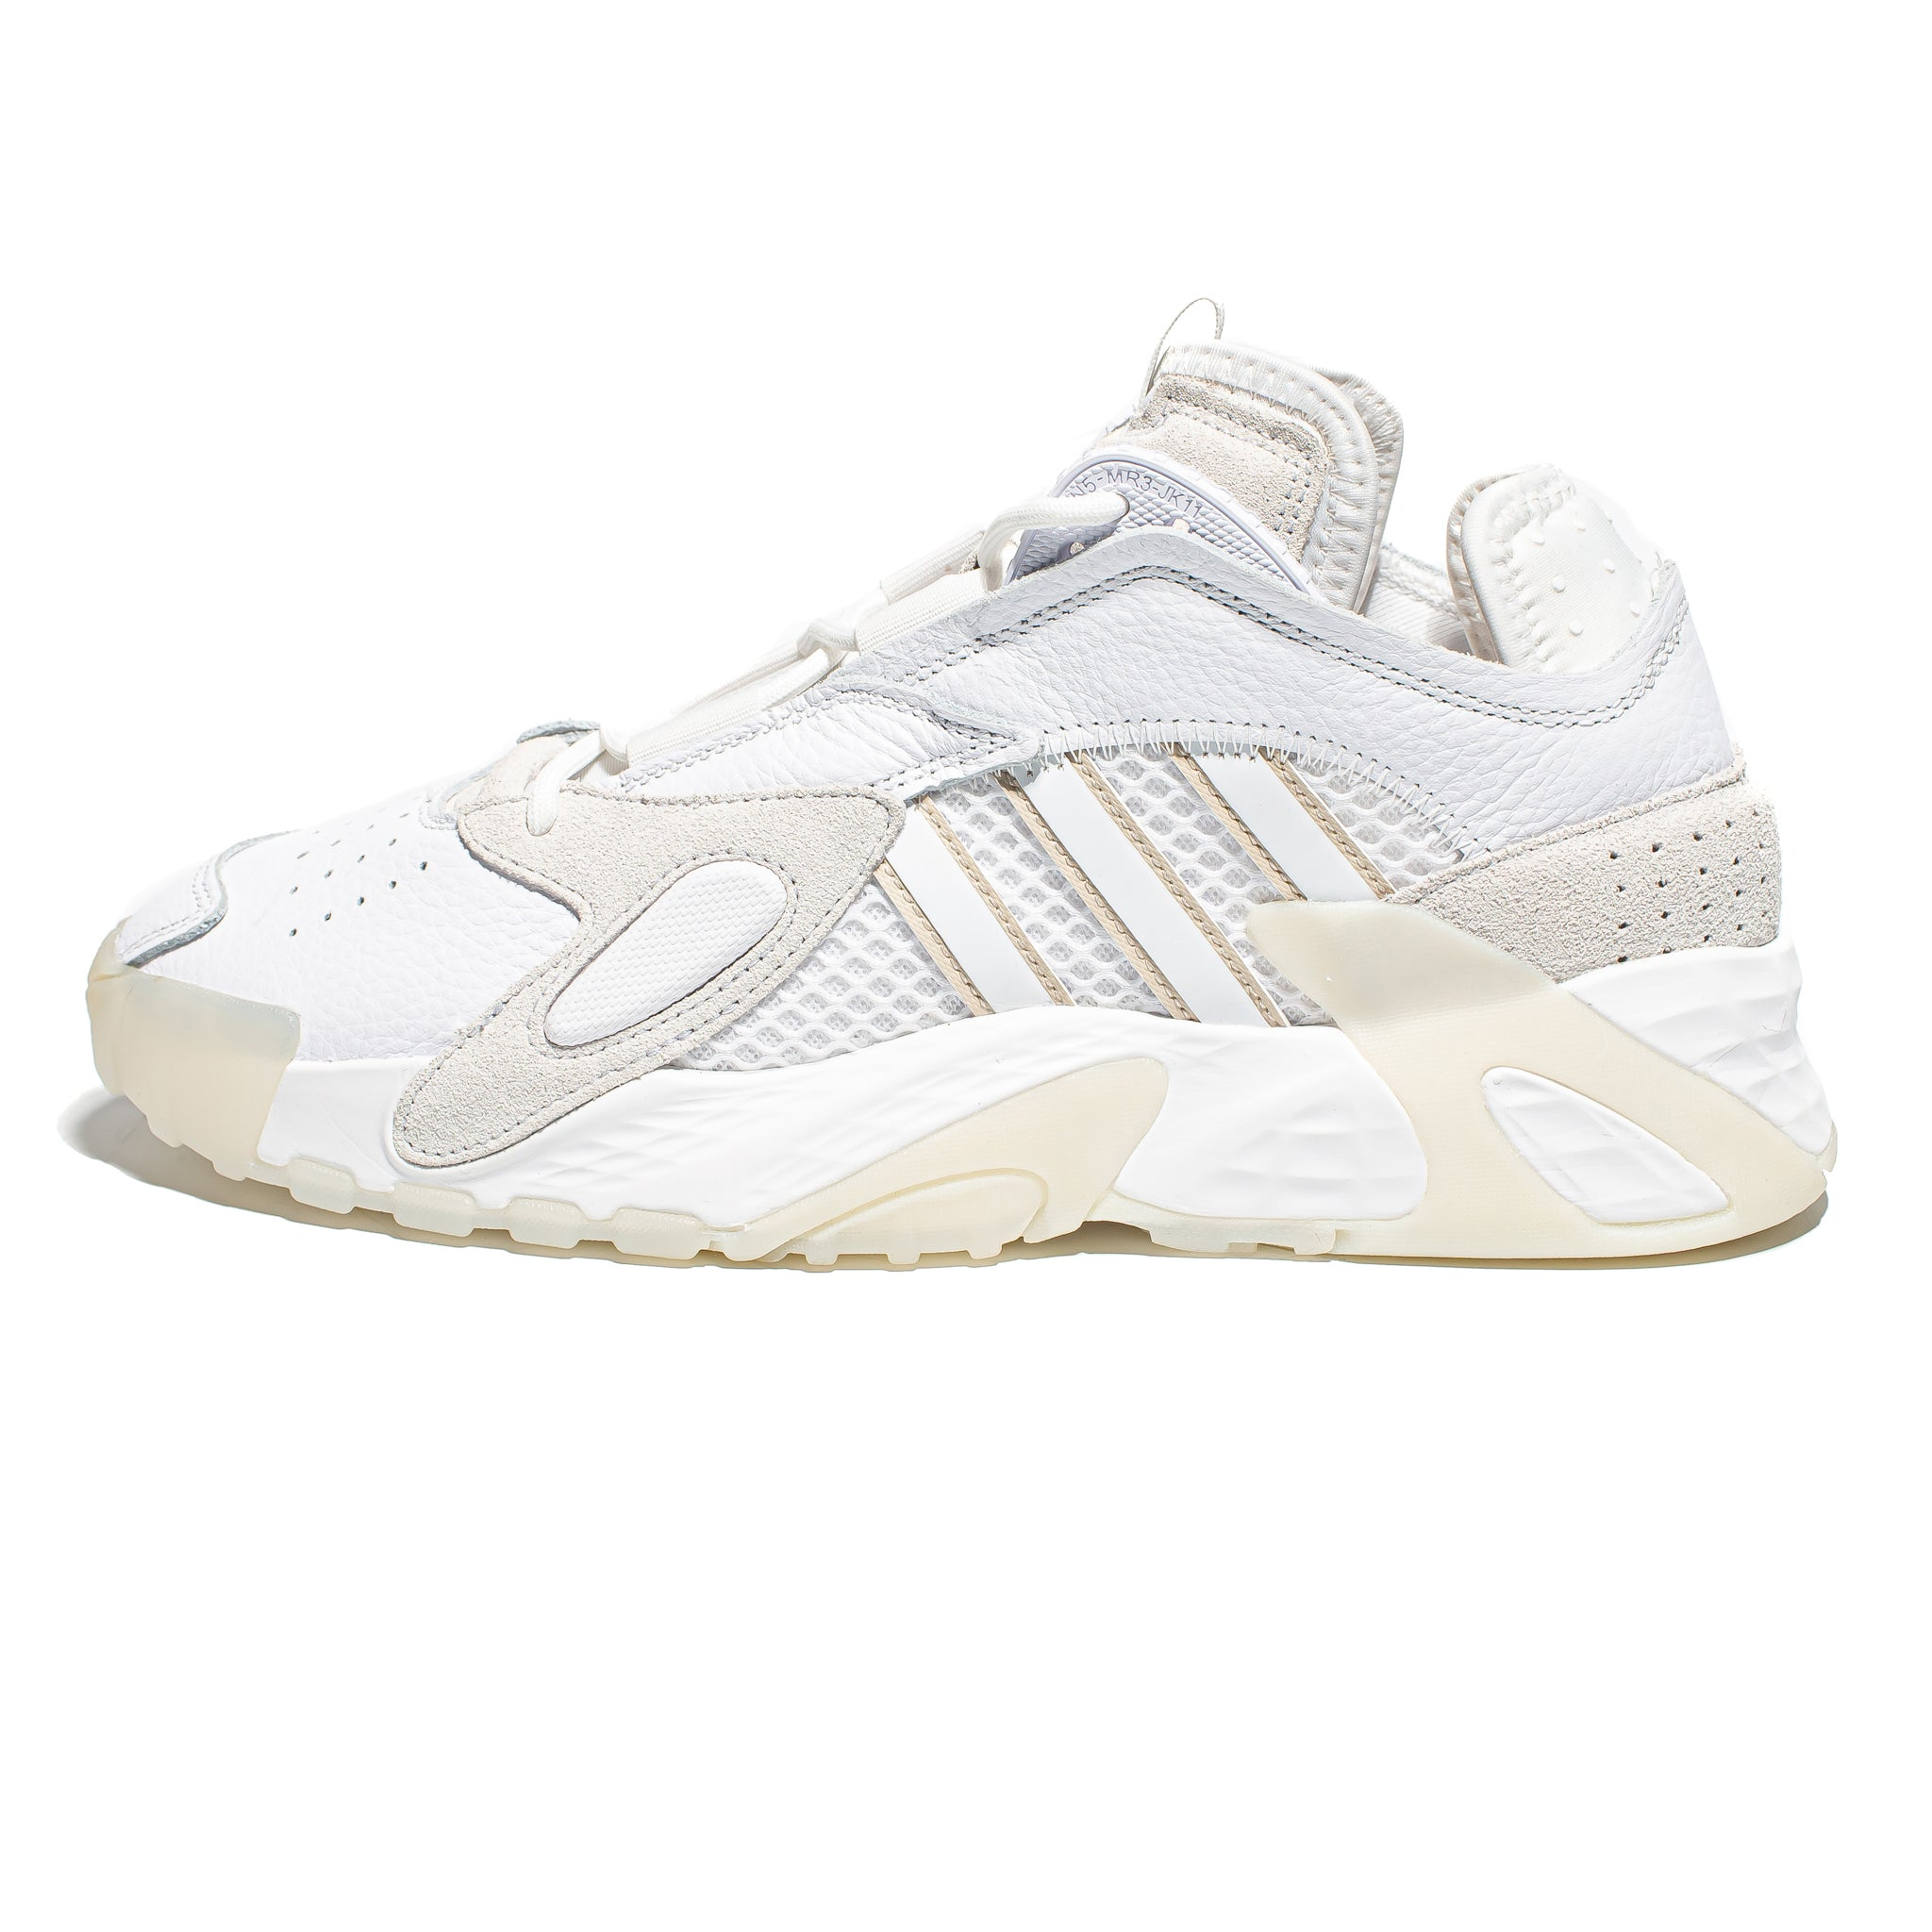 Adidas Streetball Cloud White/Crystal White